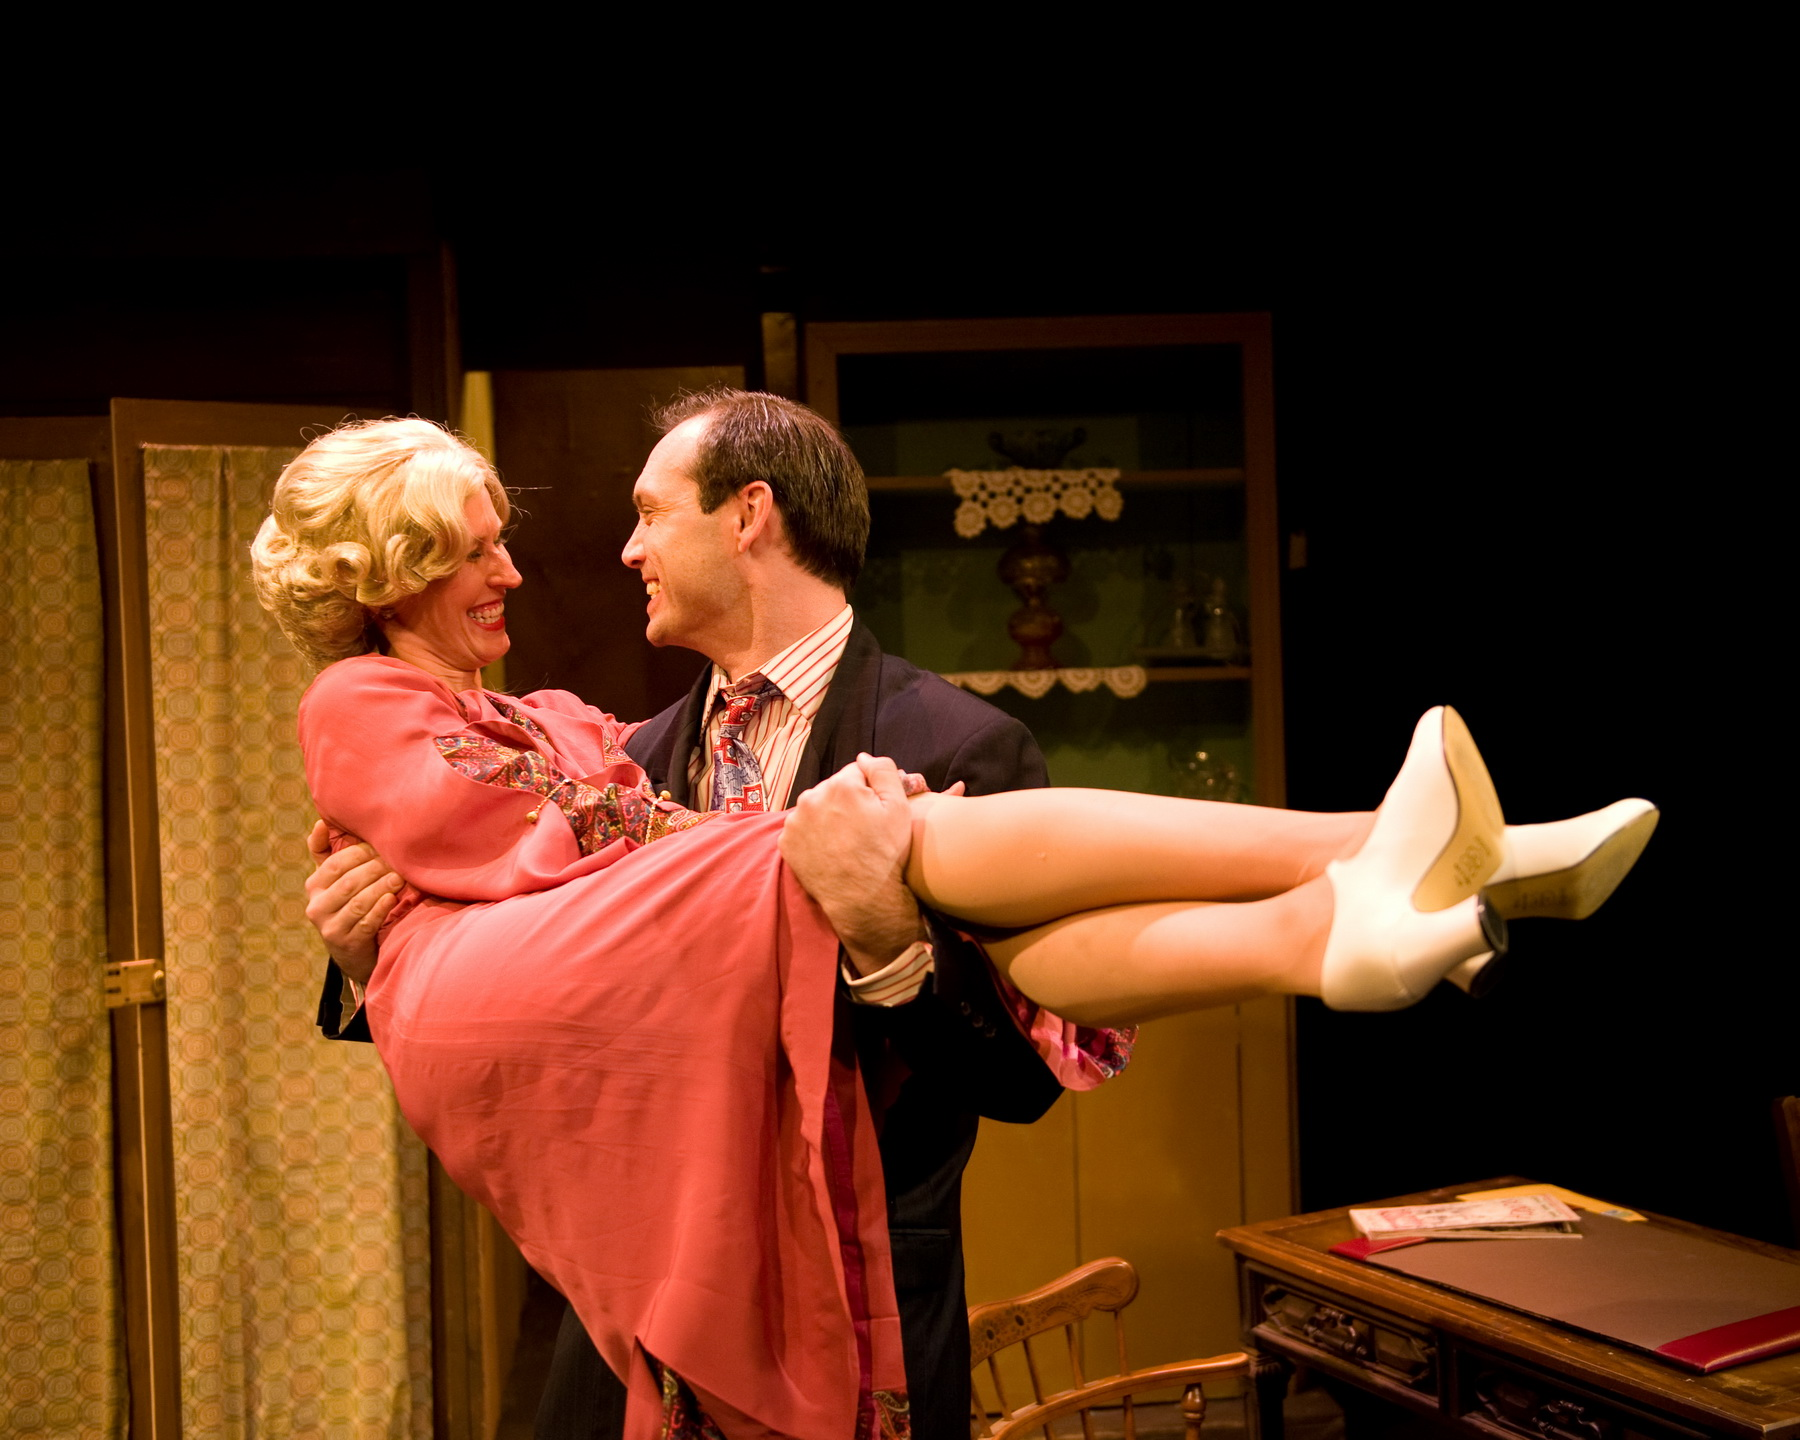 Jill Kenderes as Cecily Harrington and Jarred Nichols as Bruce Lovell